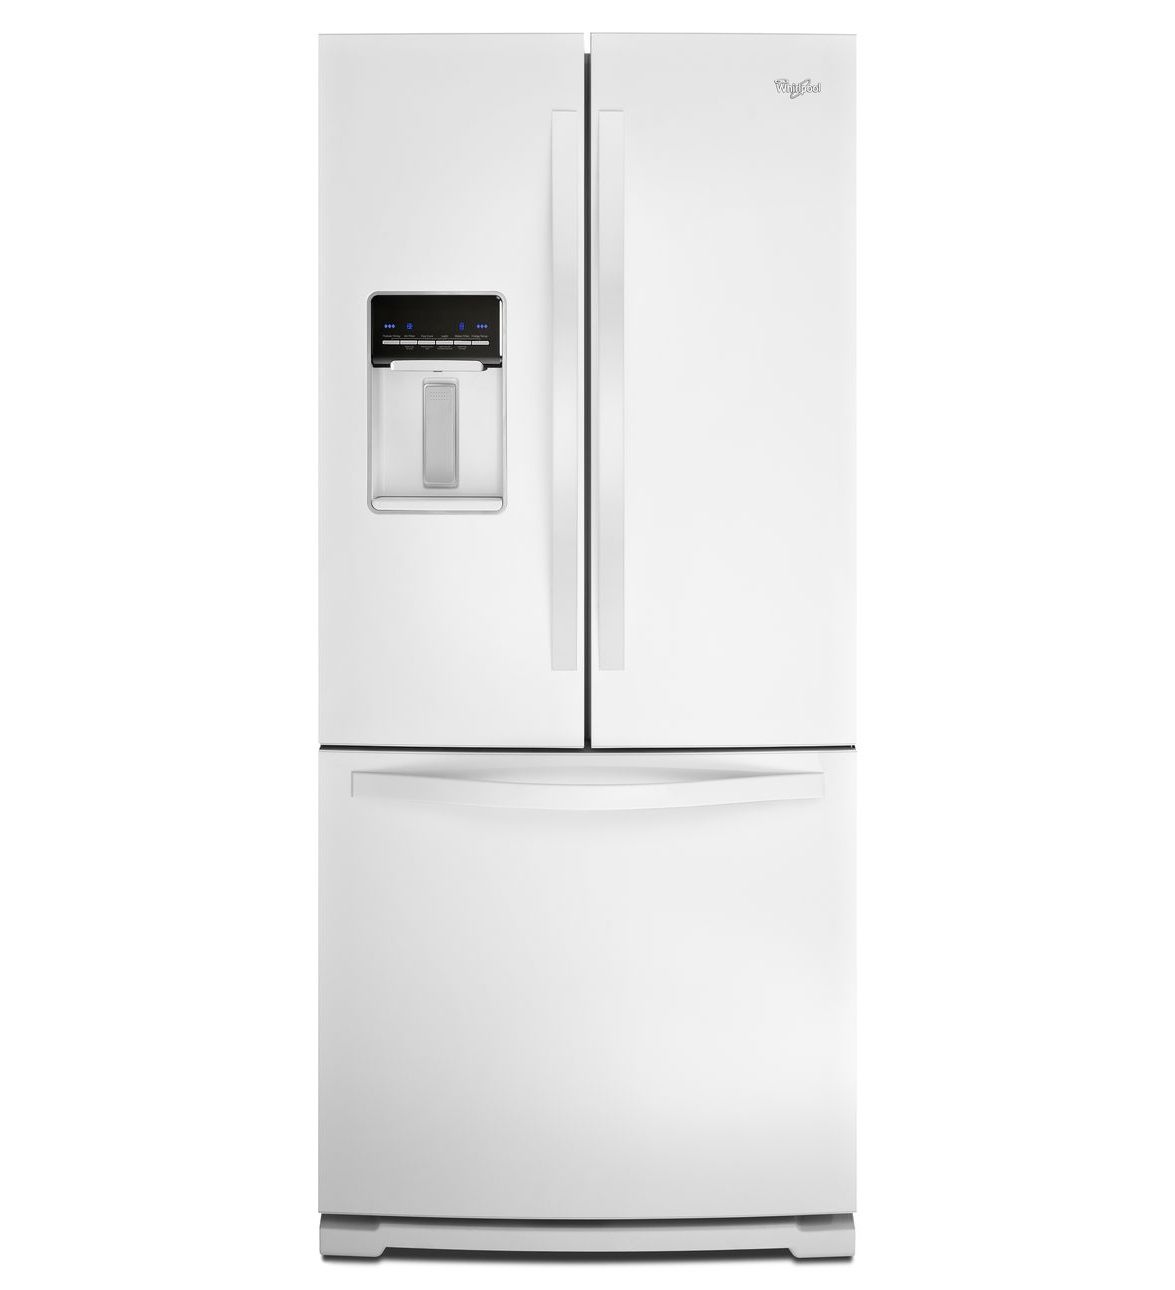 Awesome Apartment Size Refrigerator Dimensions Ideas .  Apartment Size Refrigerator Freezer